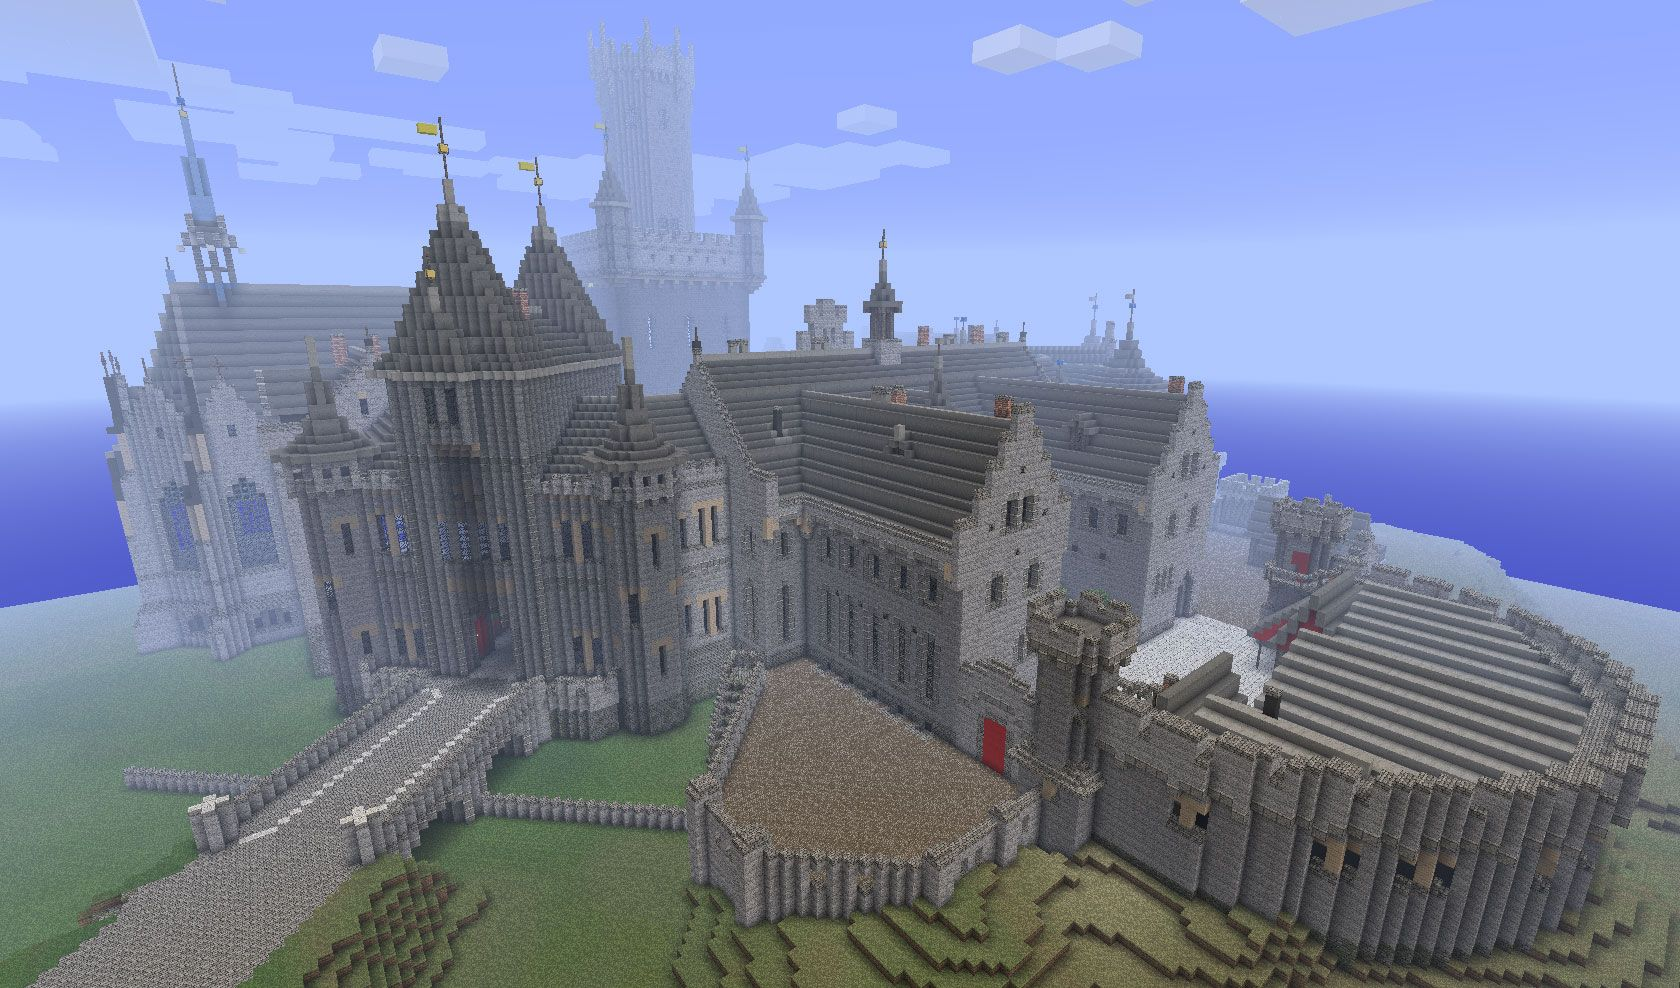 minecraft castle | minecraft medieval castle download | minecraft